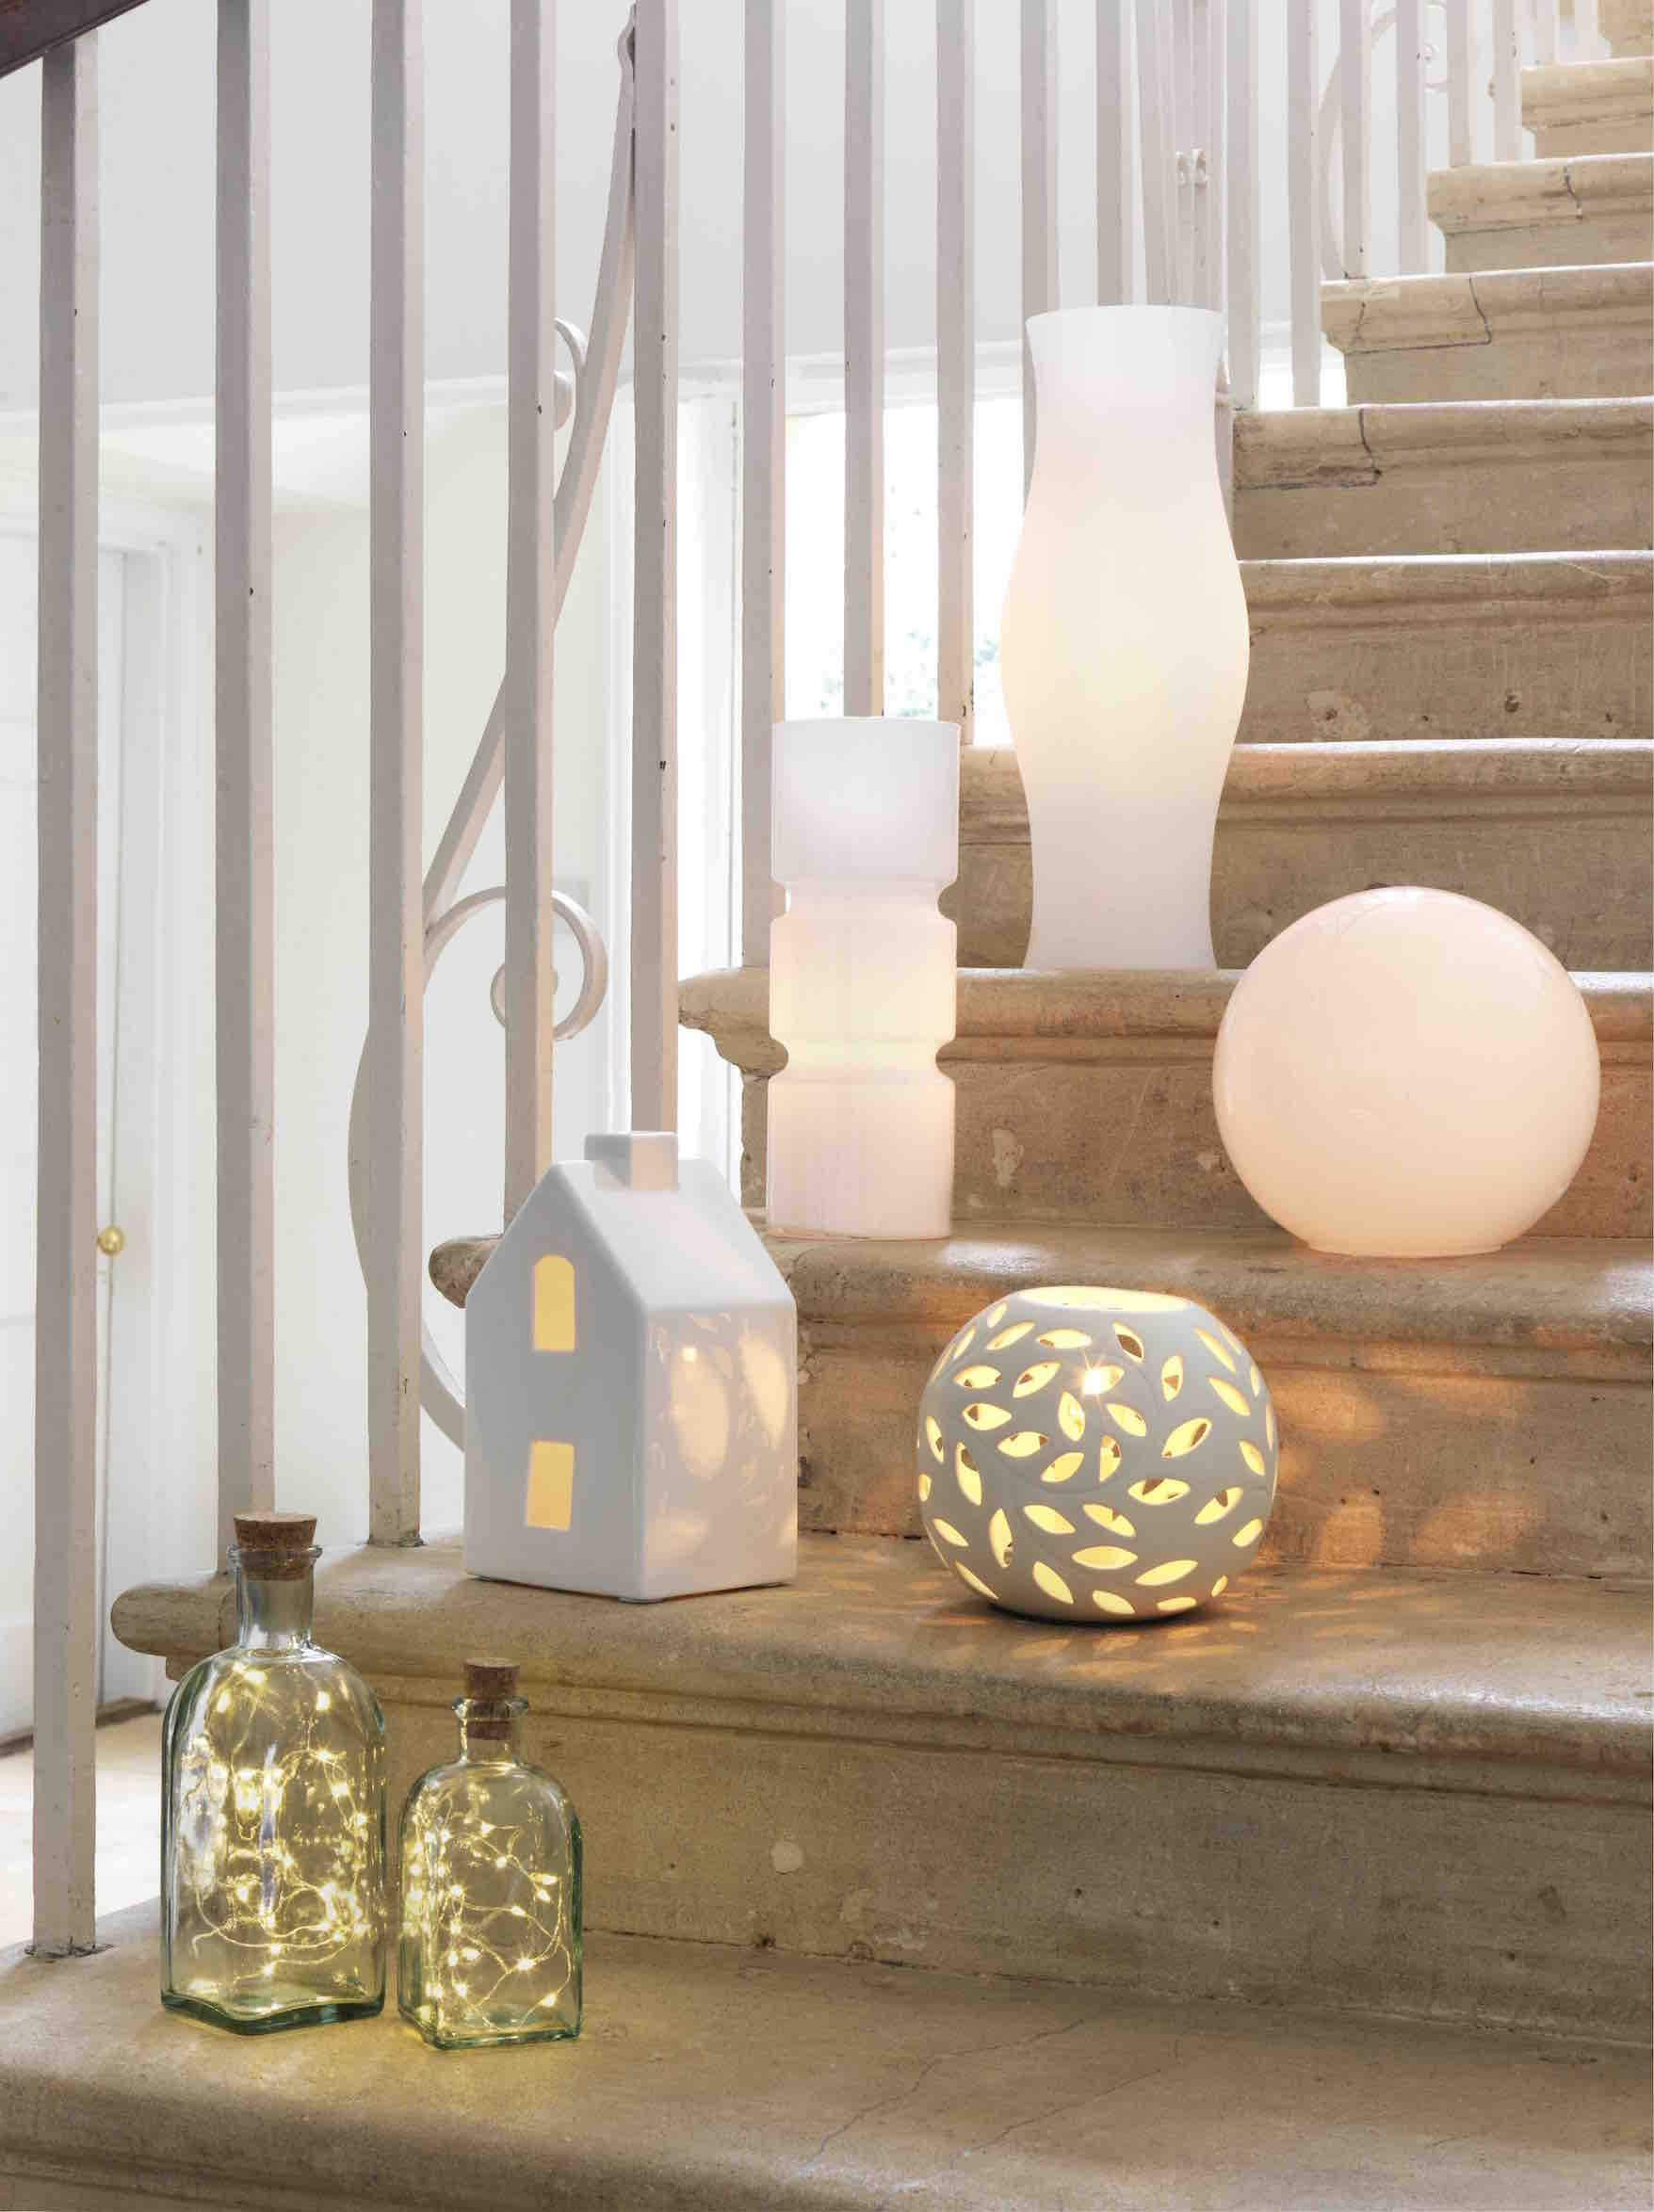 Set The Mood With Our Range Of Beautiful Lighting Available